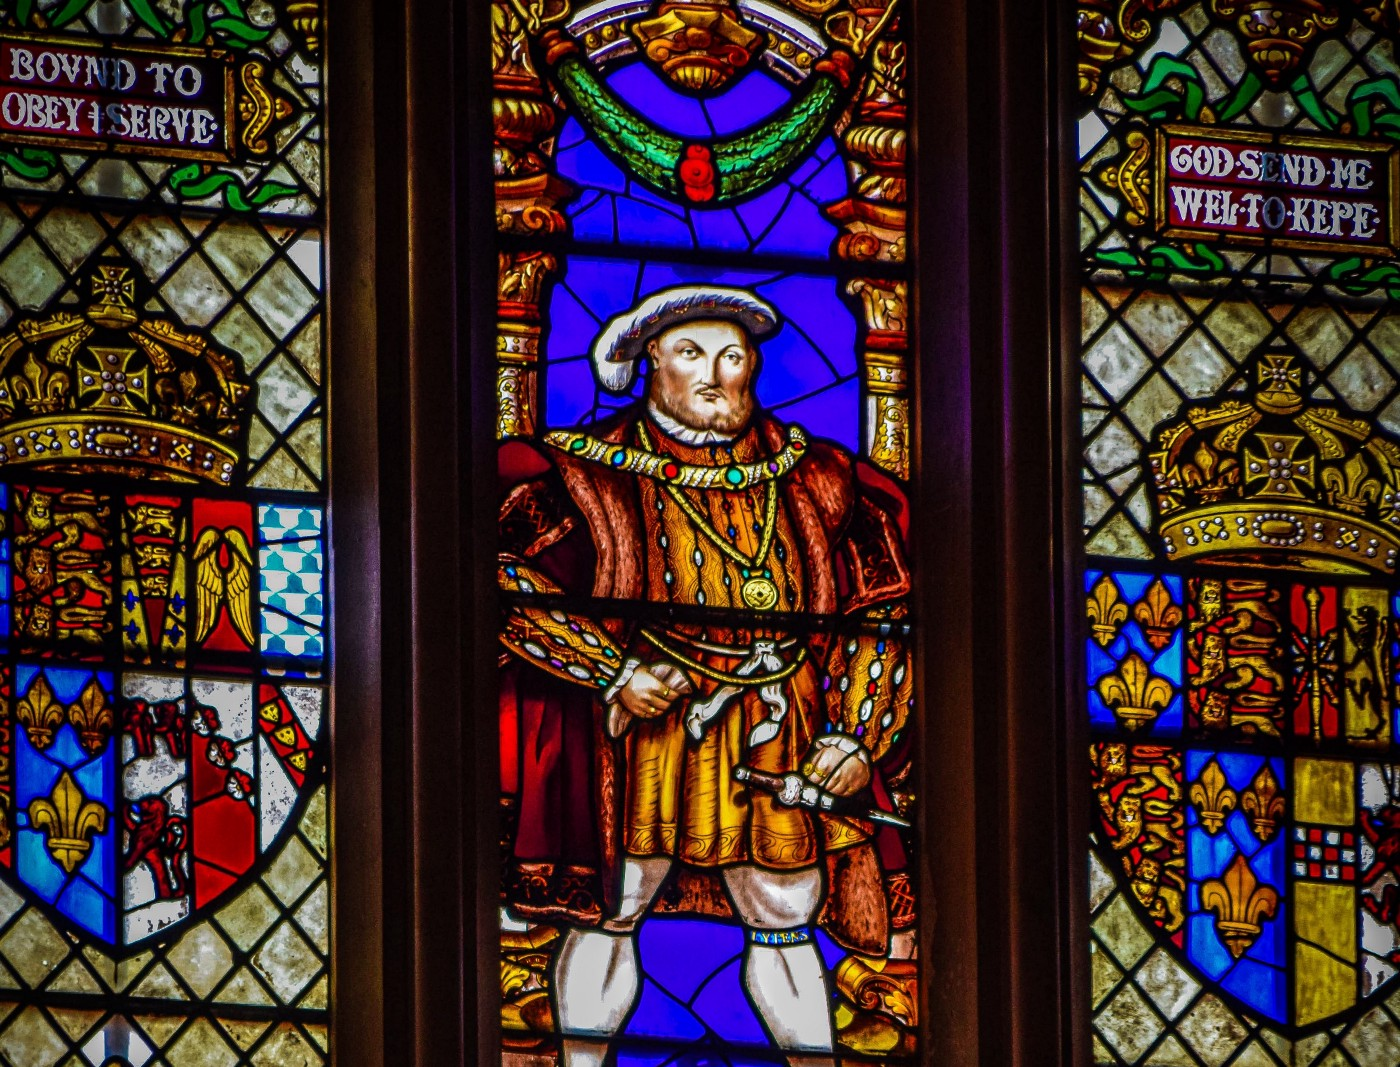 Image of Henry VIII pictured on a church, stain glass window.